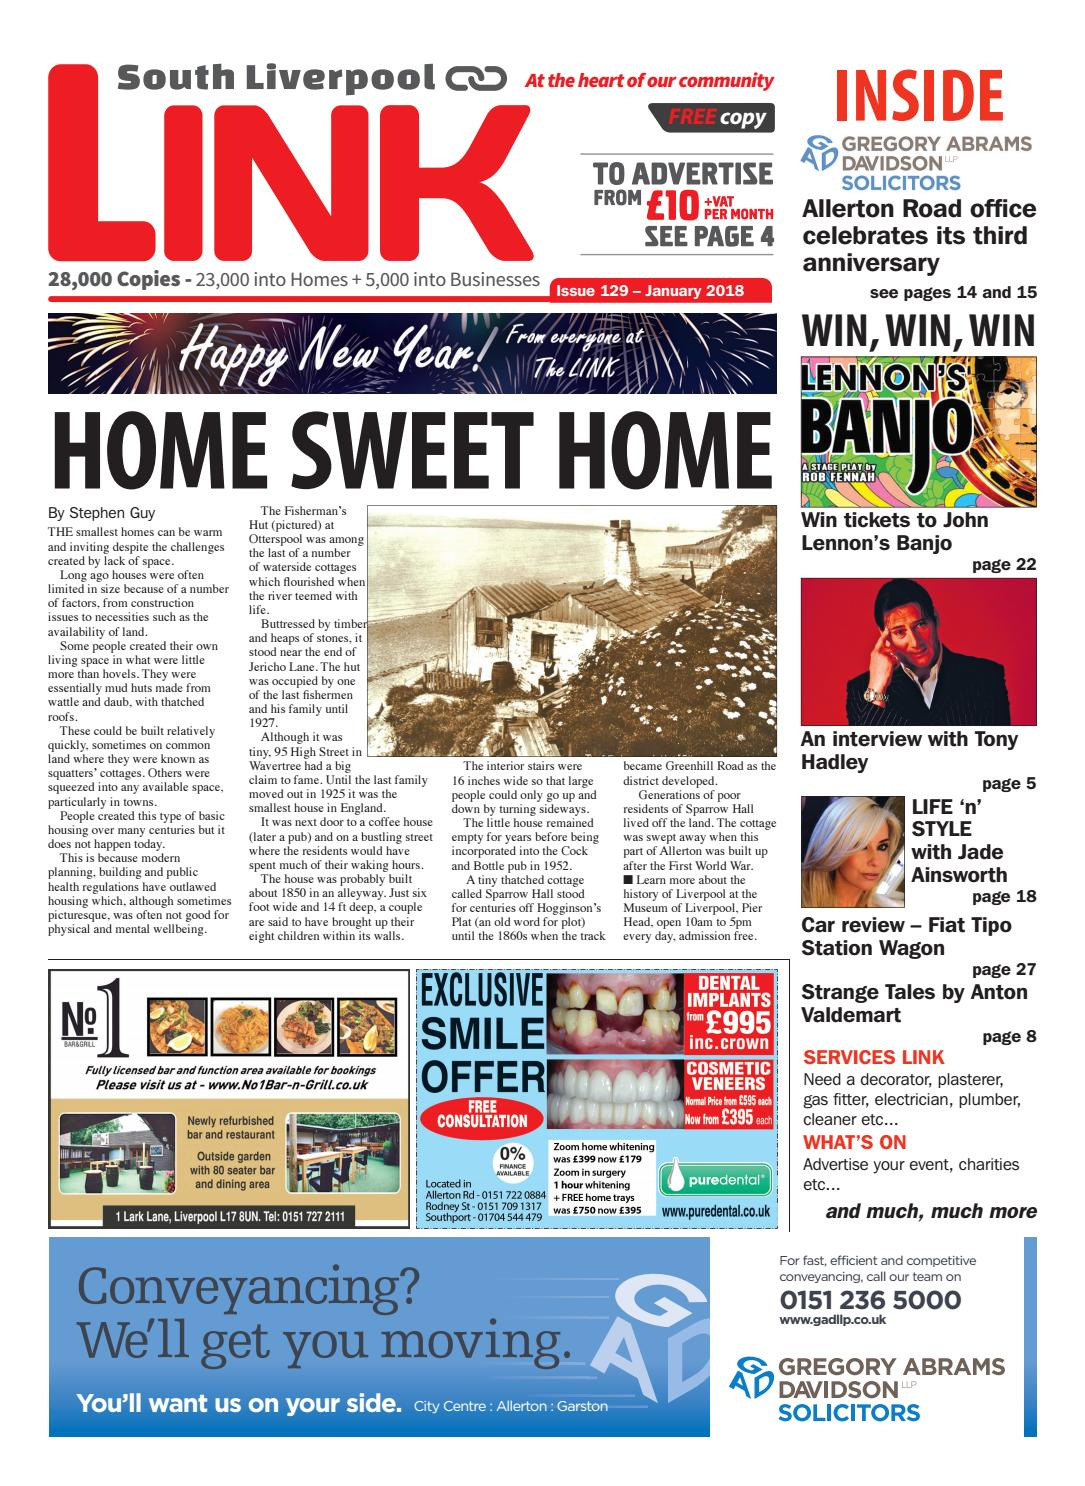 South liverpool issue 129 jan 2018 by Liverpool Link - issuu